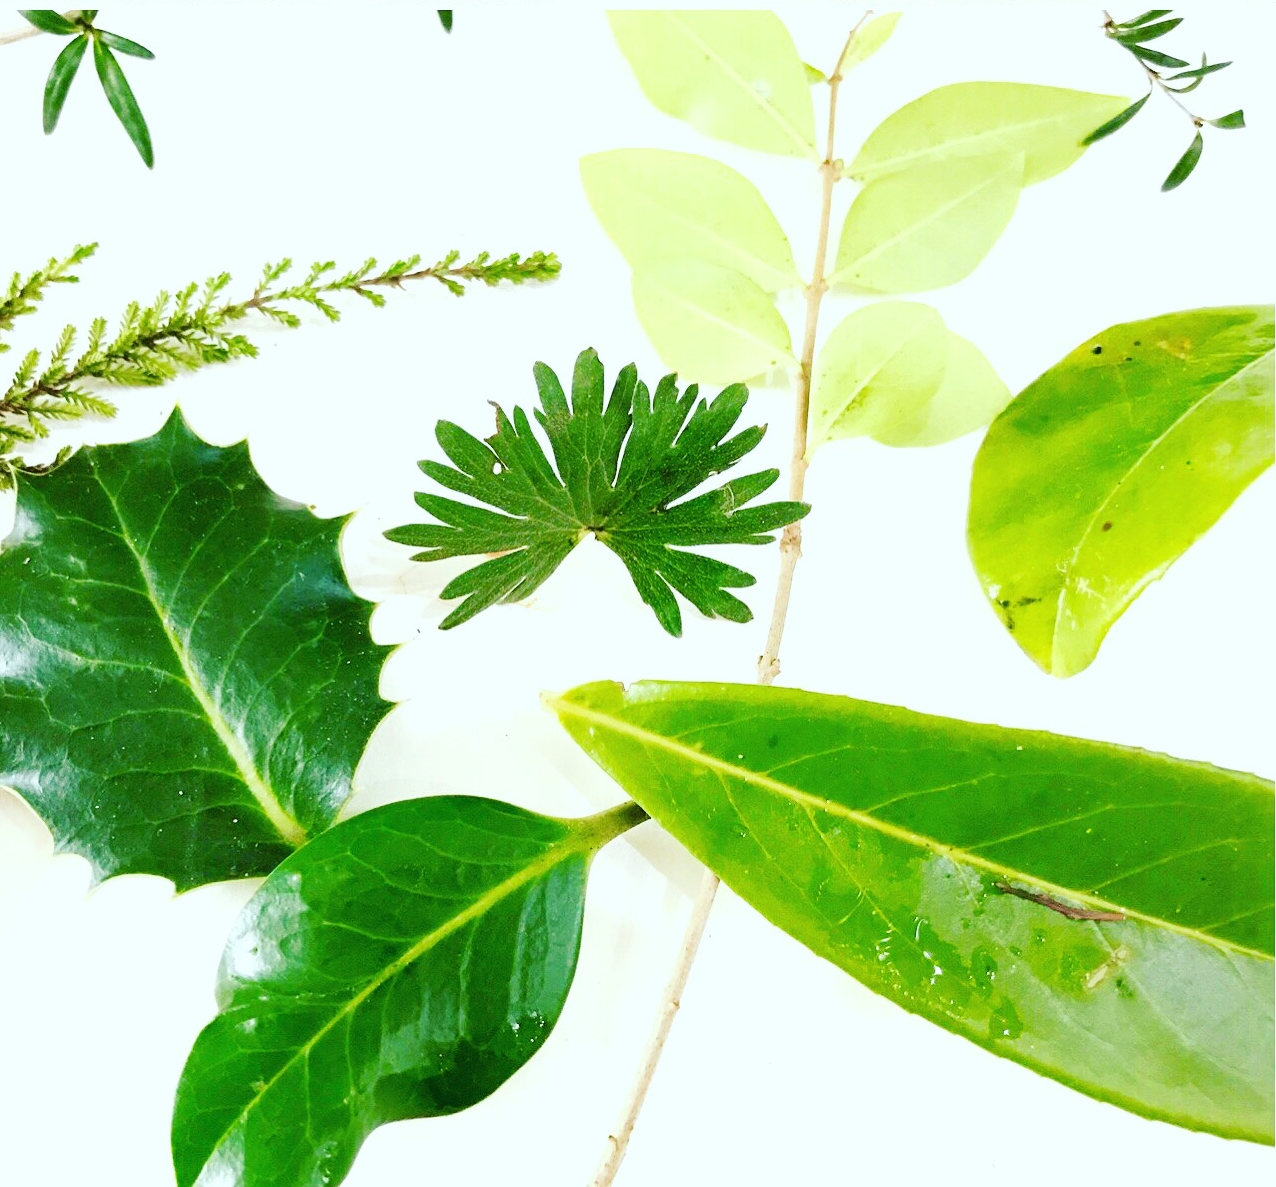 Samples of the lovely leaves, branches and twigs from the garden.